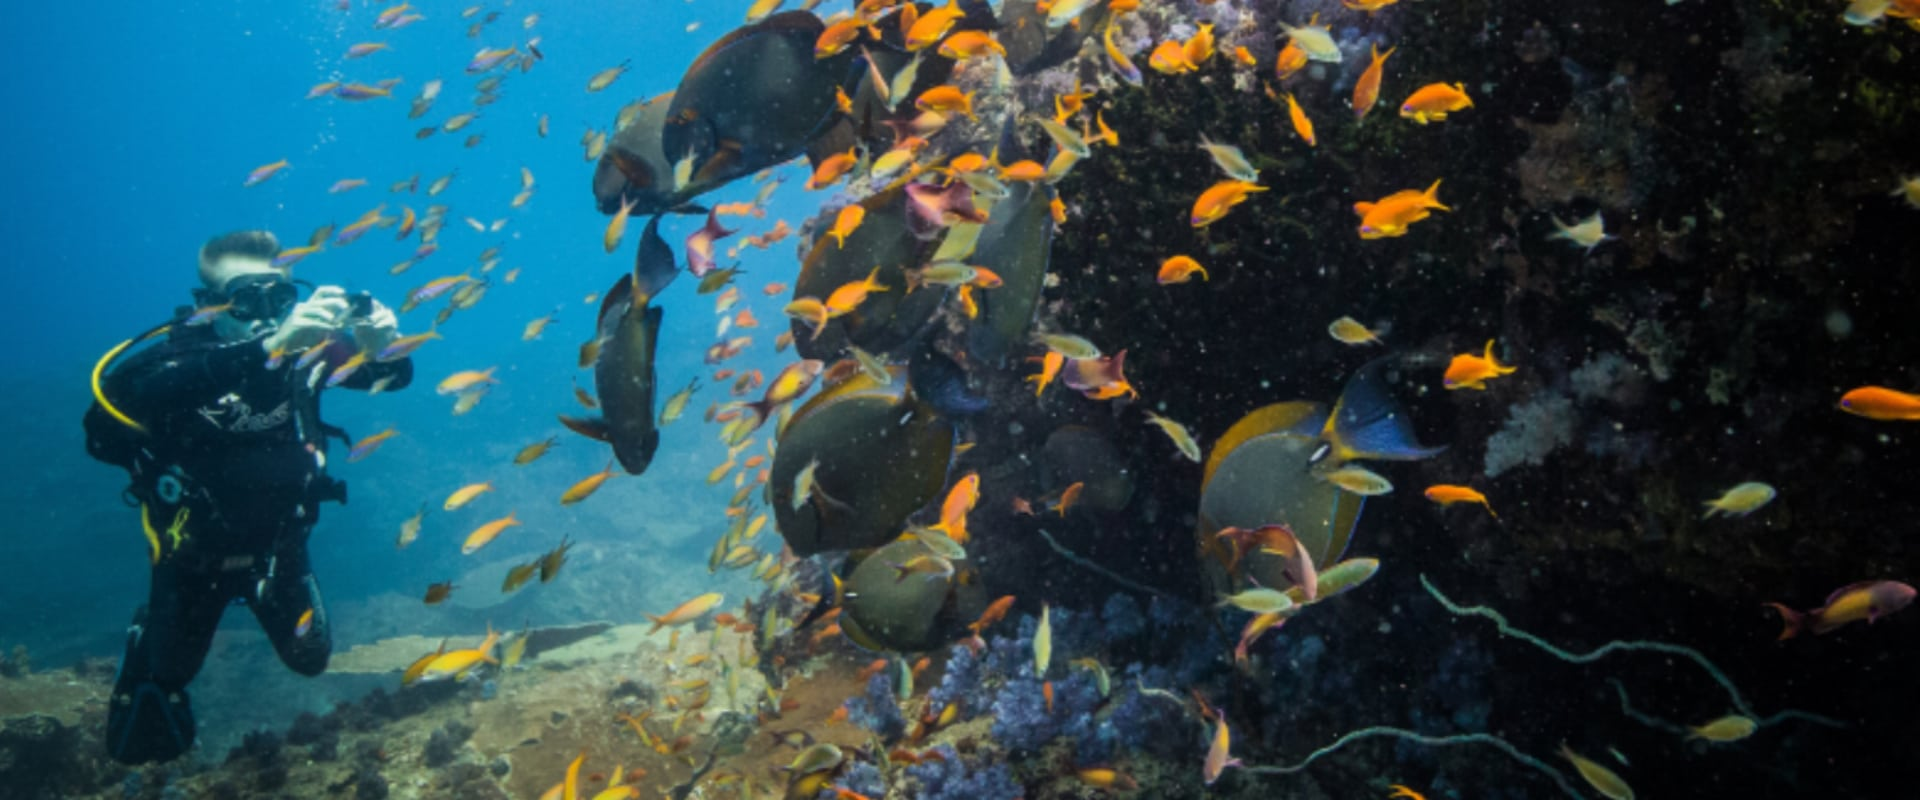 Dive or snorkel the reefs in a pristine Marine National Park